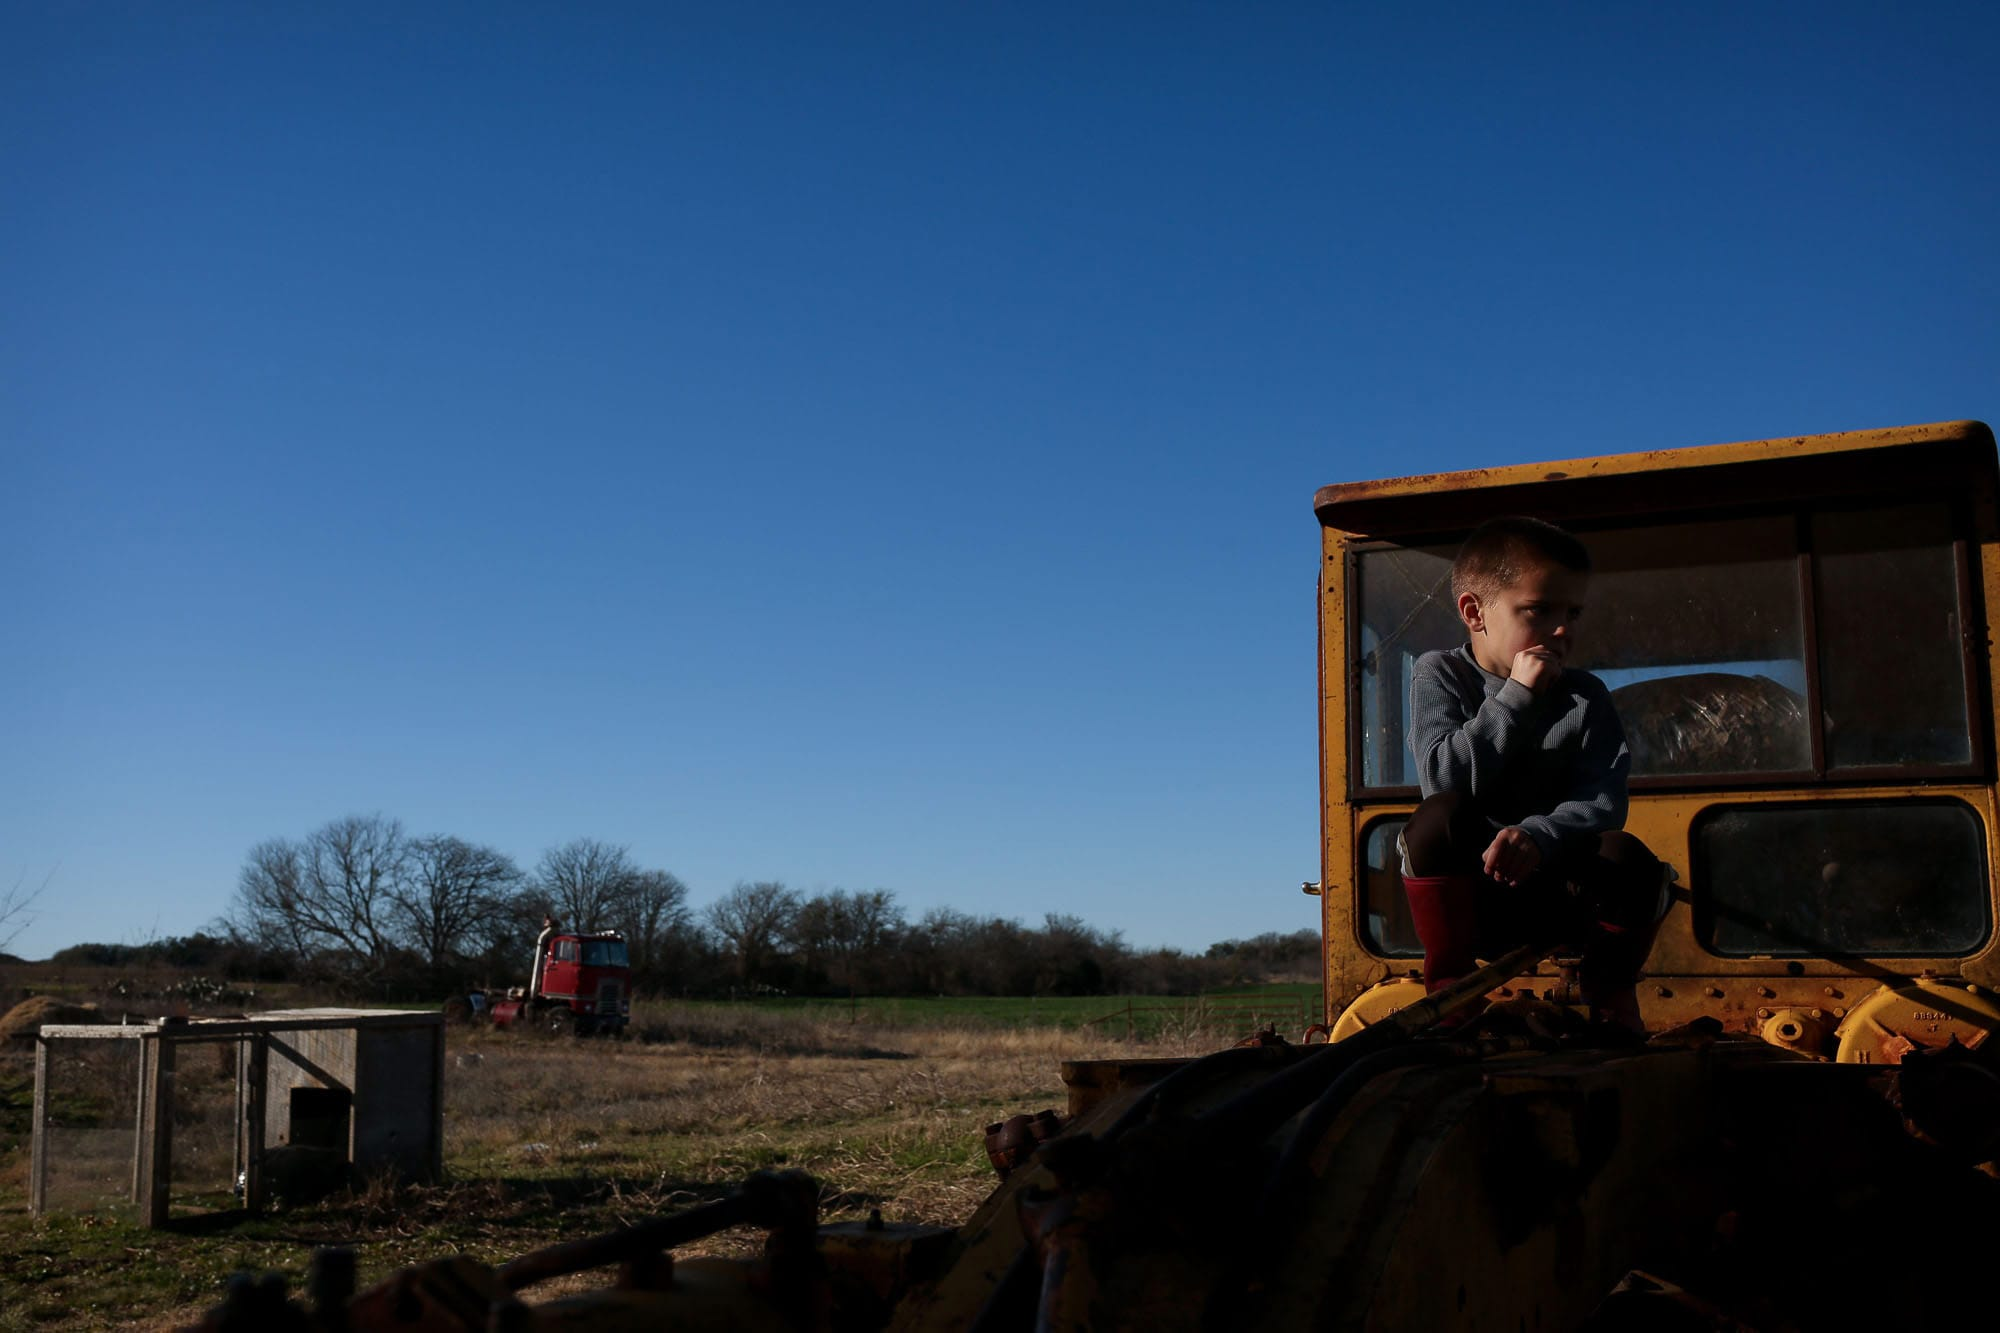 kid sits on old tractor with old truck in background